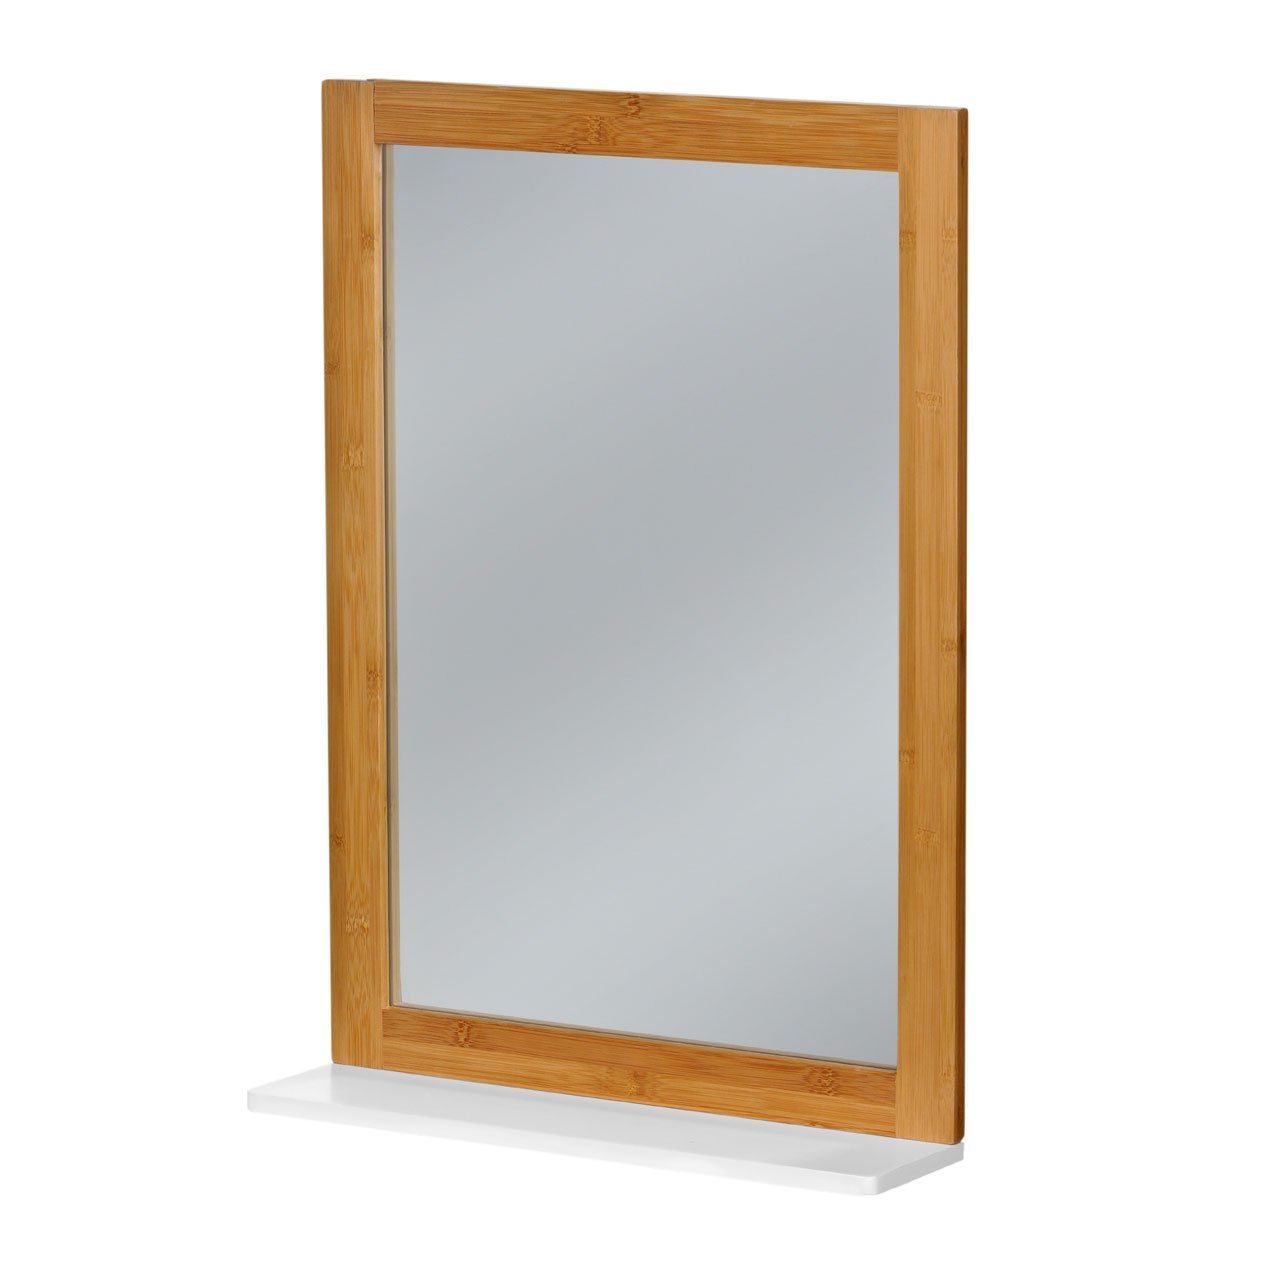 Loupe Wall Mirror Bamboo Frame Mdf White Finish Shelf Contemporary For Best And Newest Bamboo Framed Wall Mirrors (View 12 of 20)